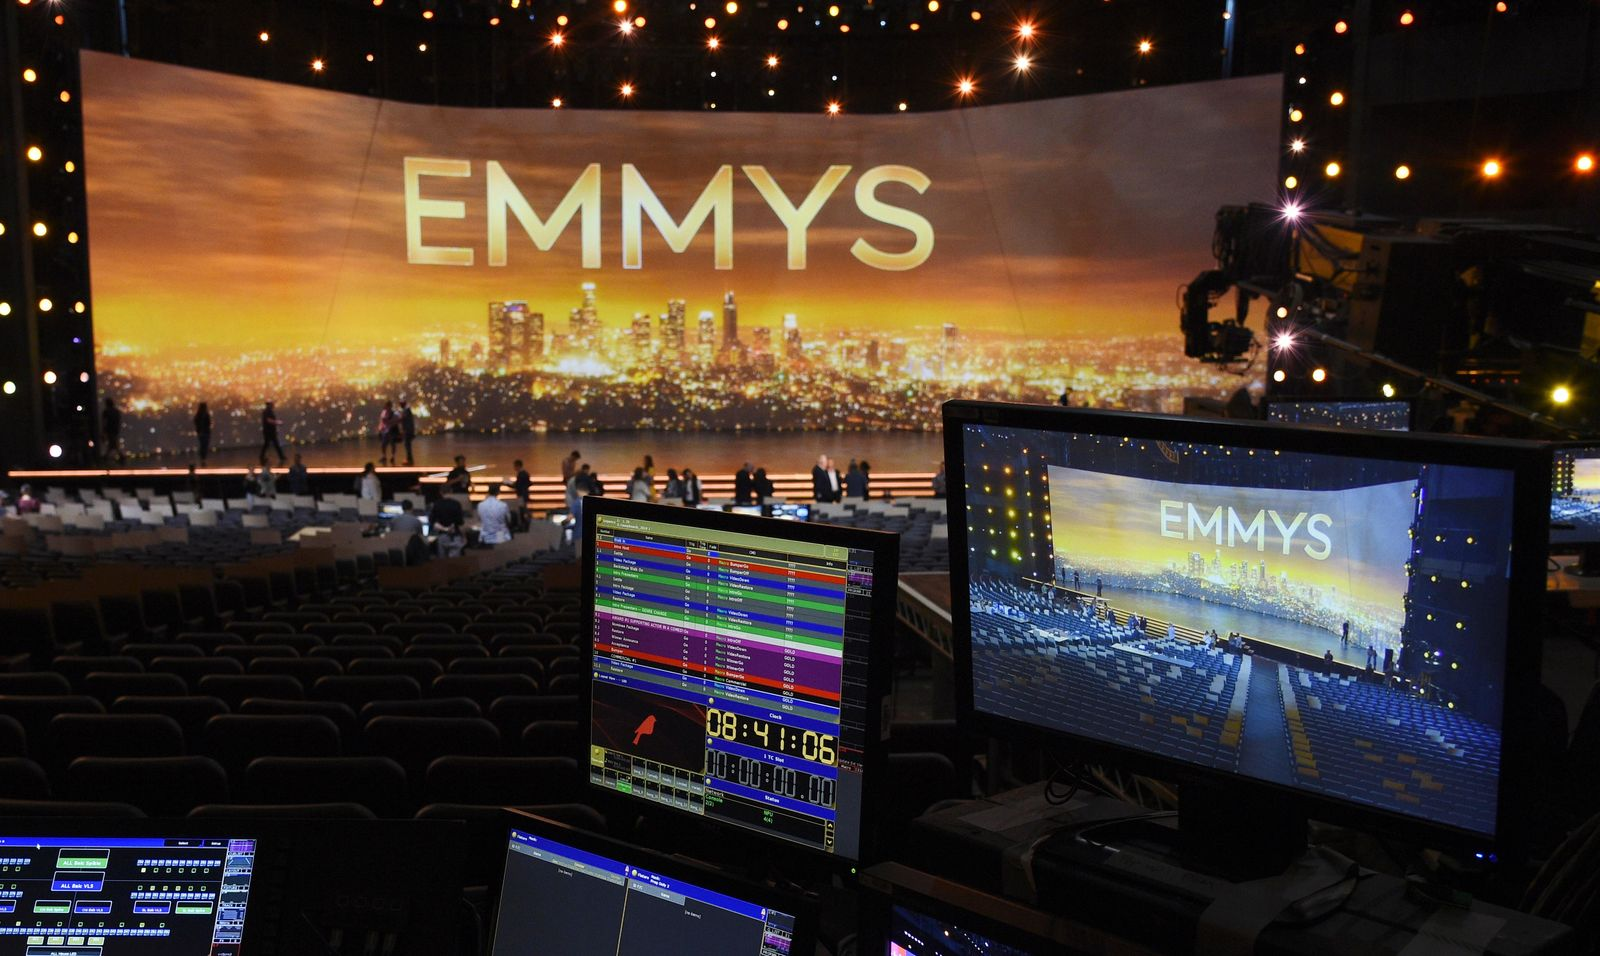 A video monitor displays the stage for Sunday's 71st Primetime Emmy Awards during Press Preview Day, Thursday, Sept. 19, 2019, at the Microsoft Theater in Los Angeles. (Photo by Chris Pizzello/Invision/AP)